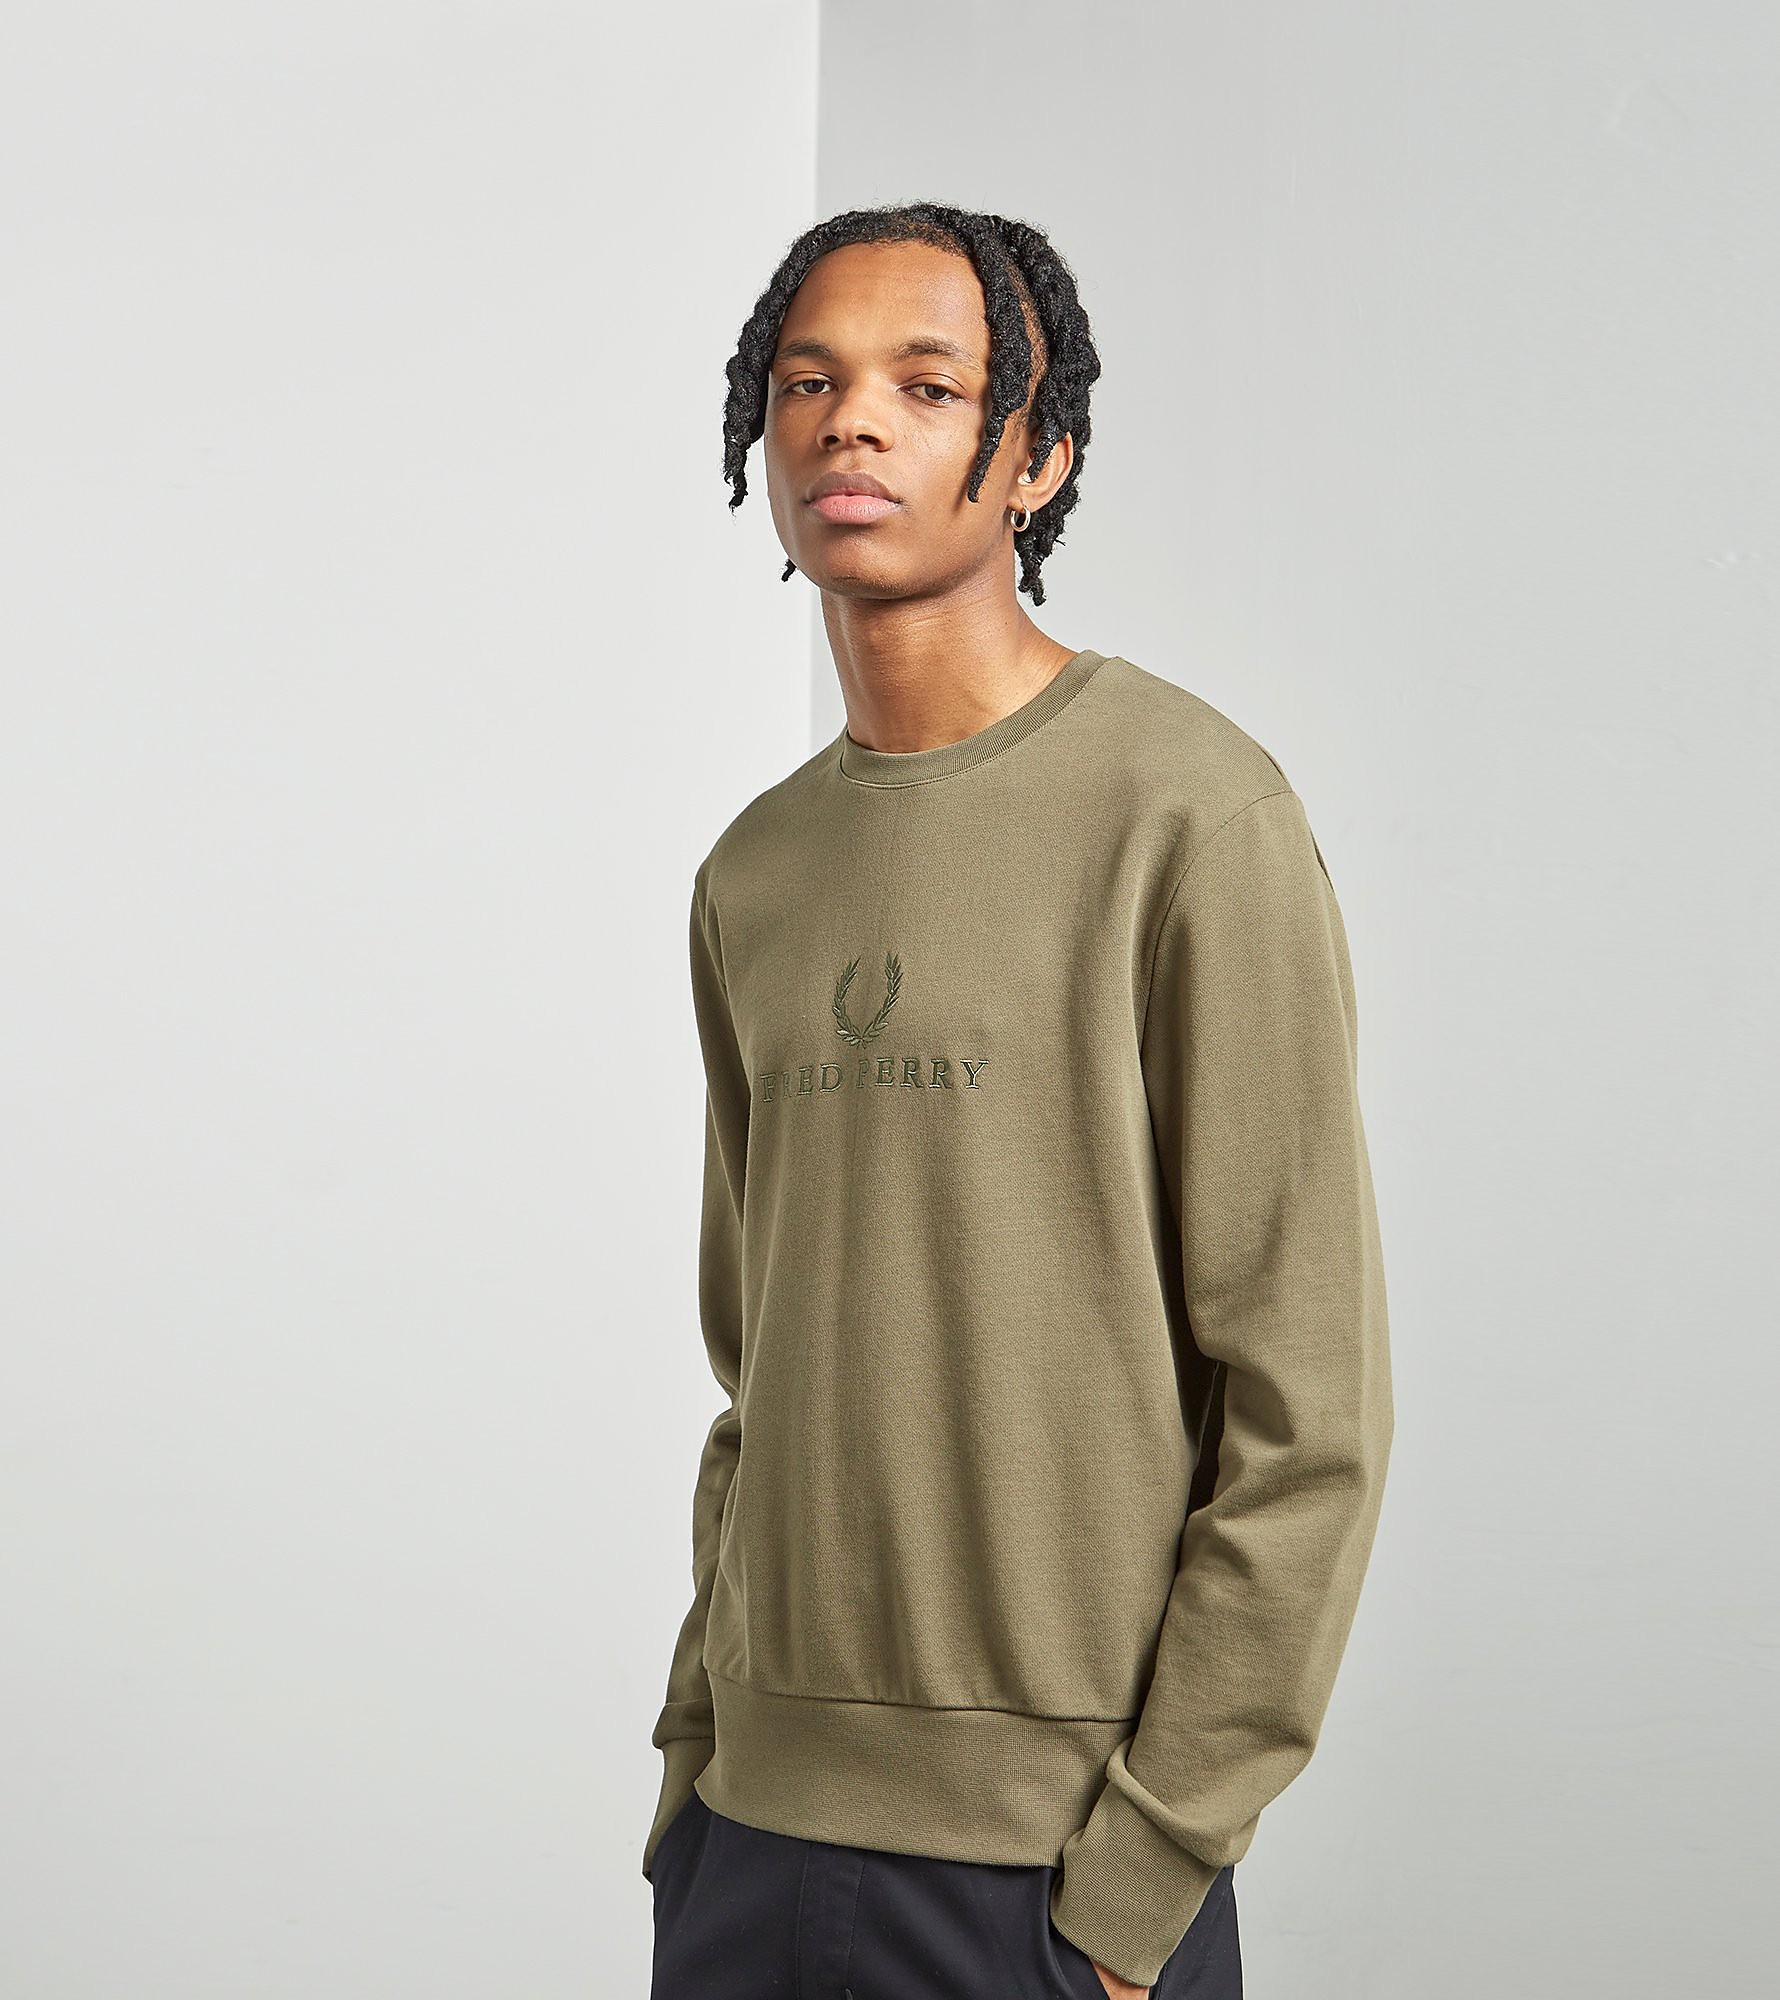 Fred Perry Tonal Embroidered Crew Sweatshirt